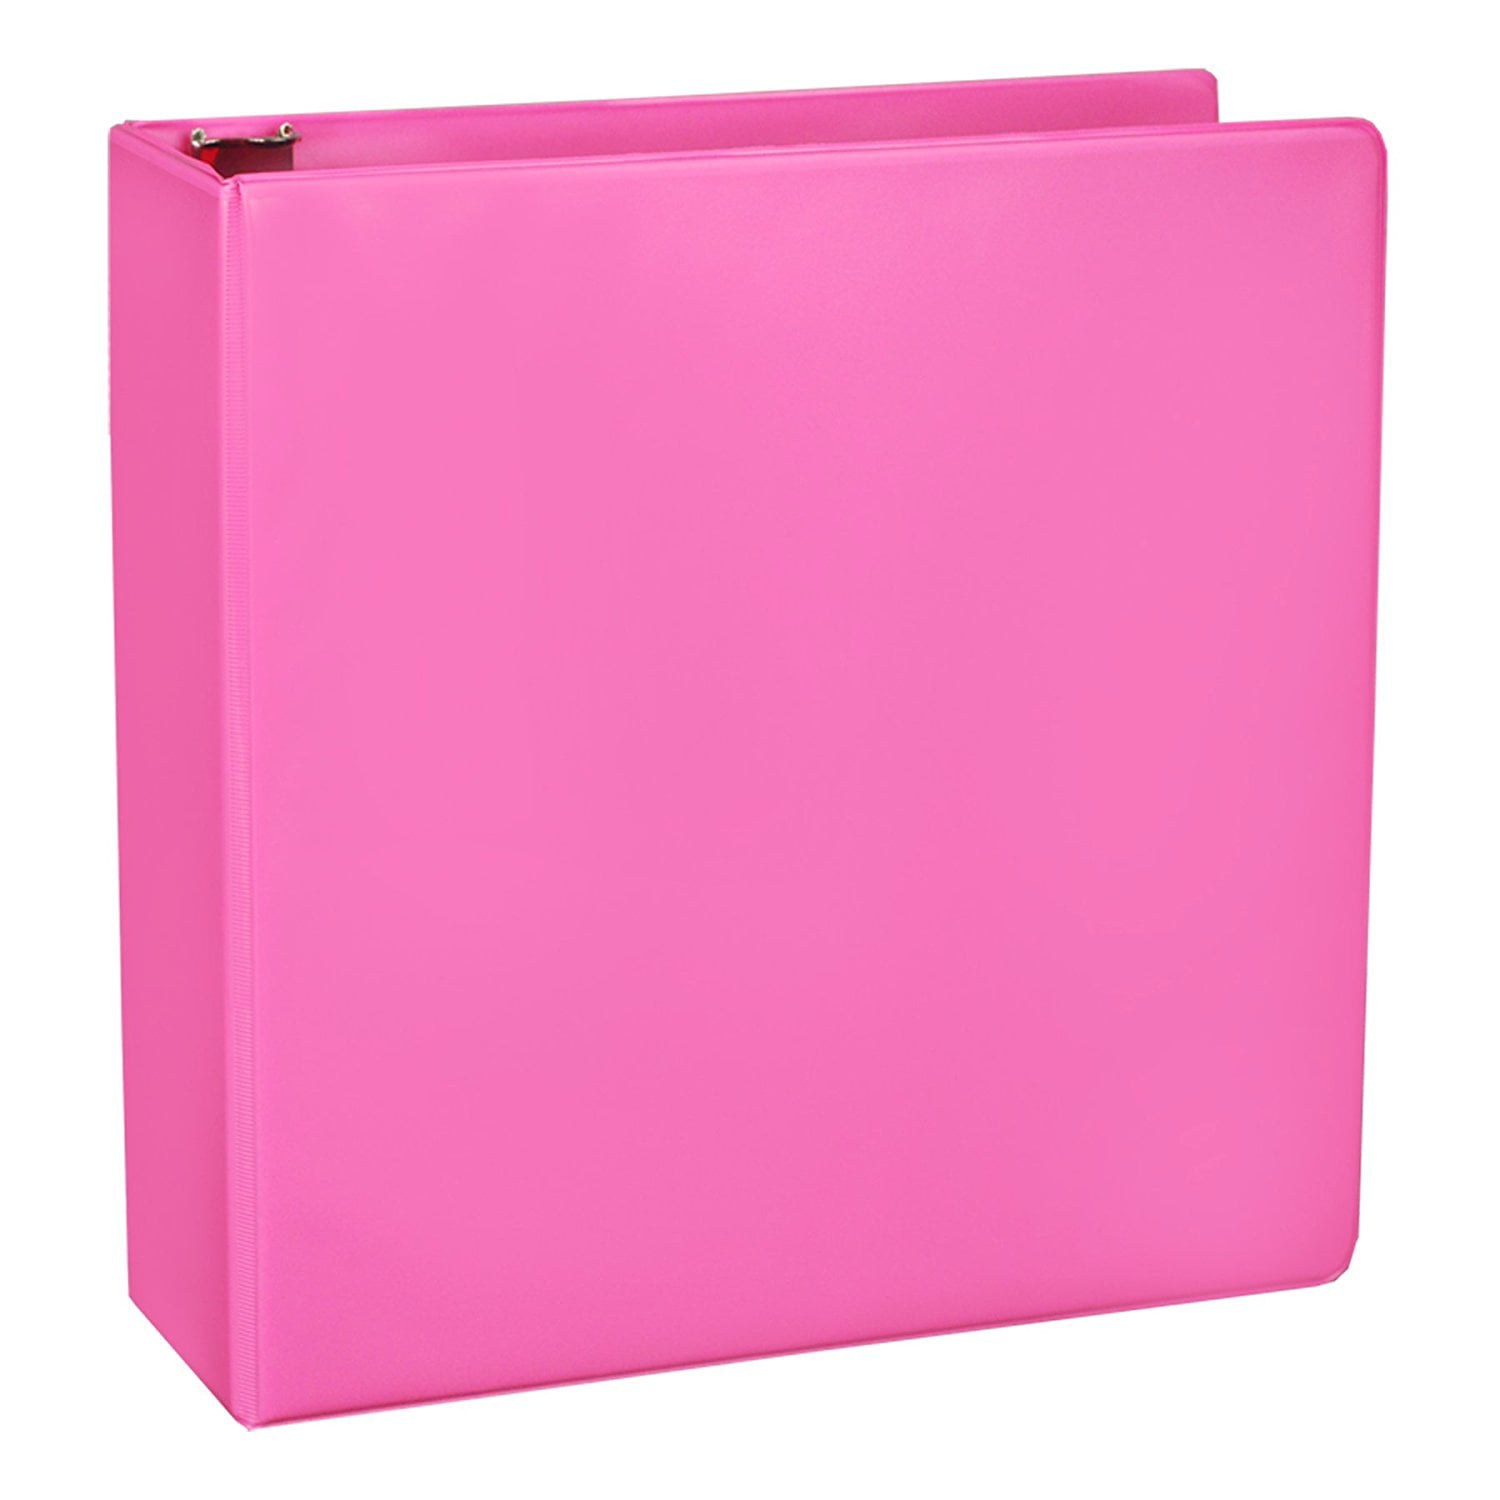 "Durable Fashion Color 3 Ring Binder, 2"" Inch Round Rings"